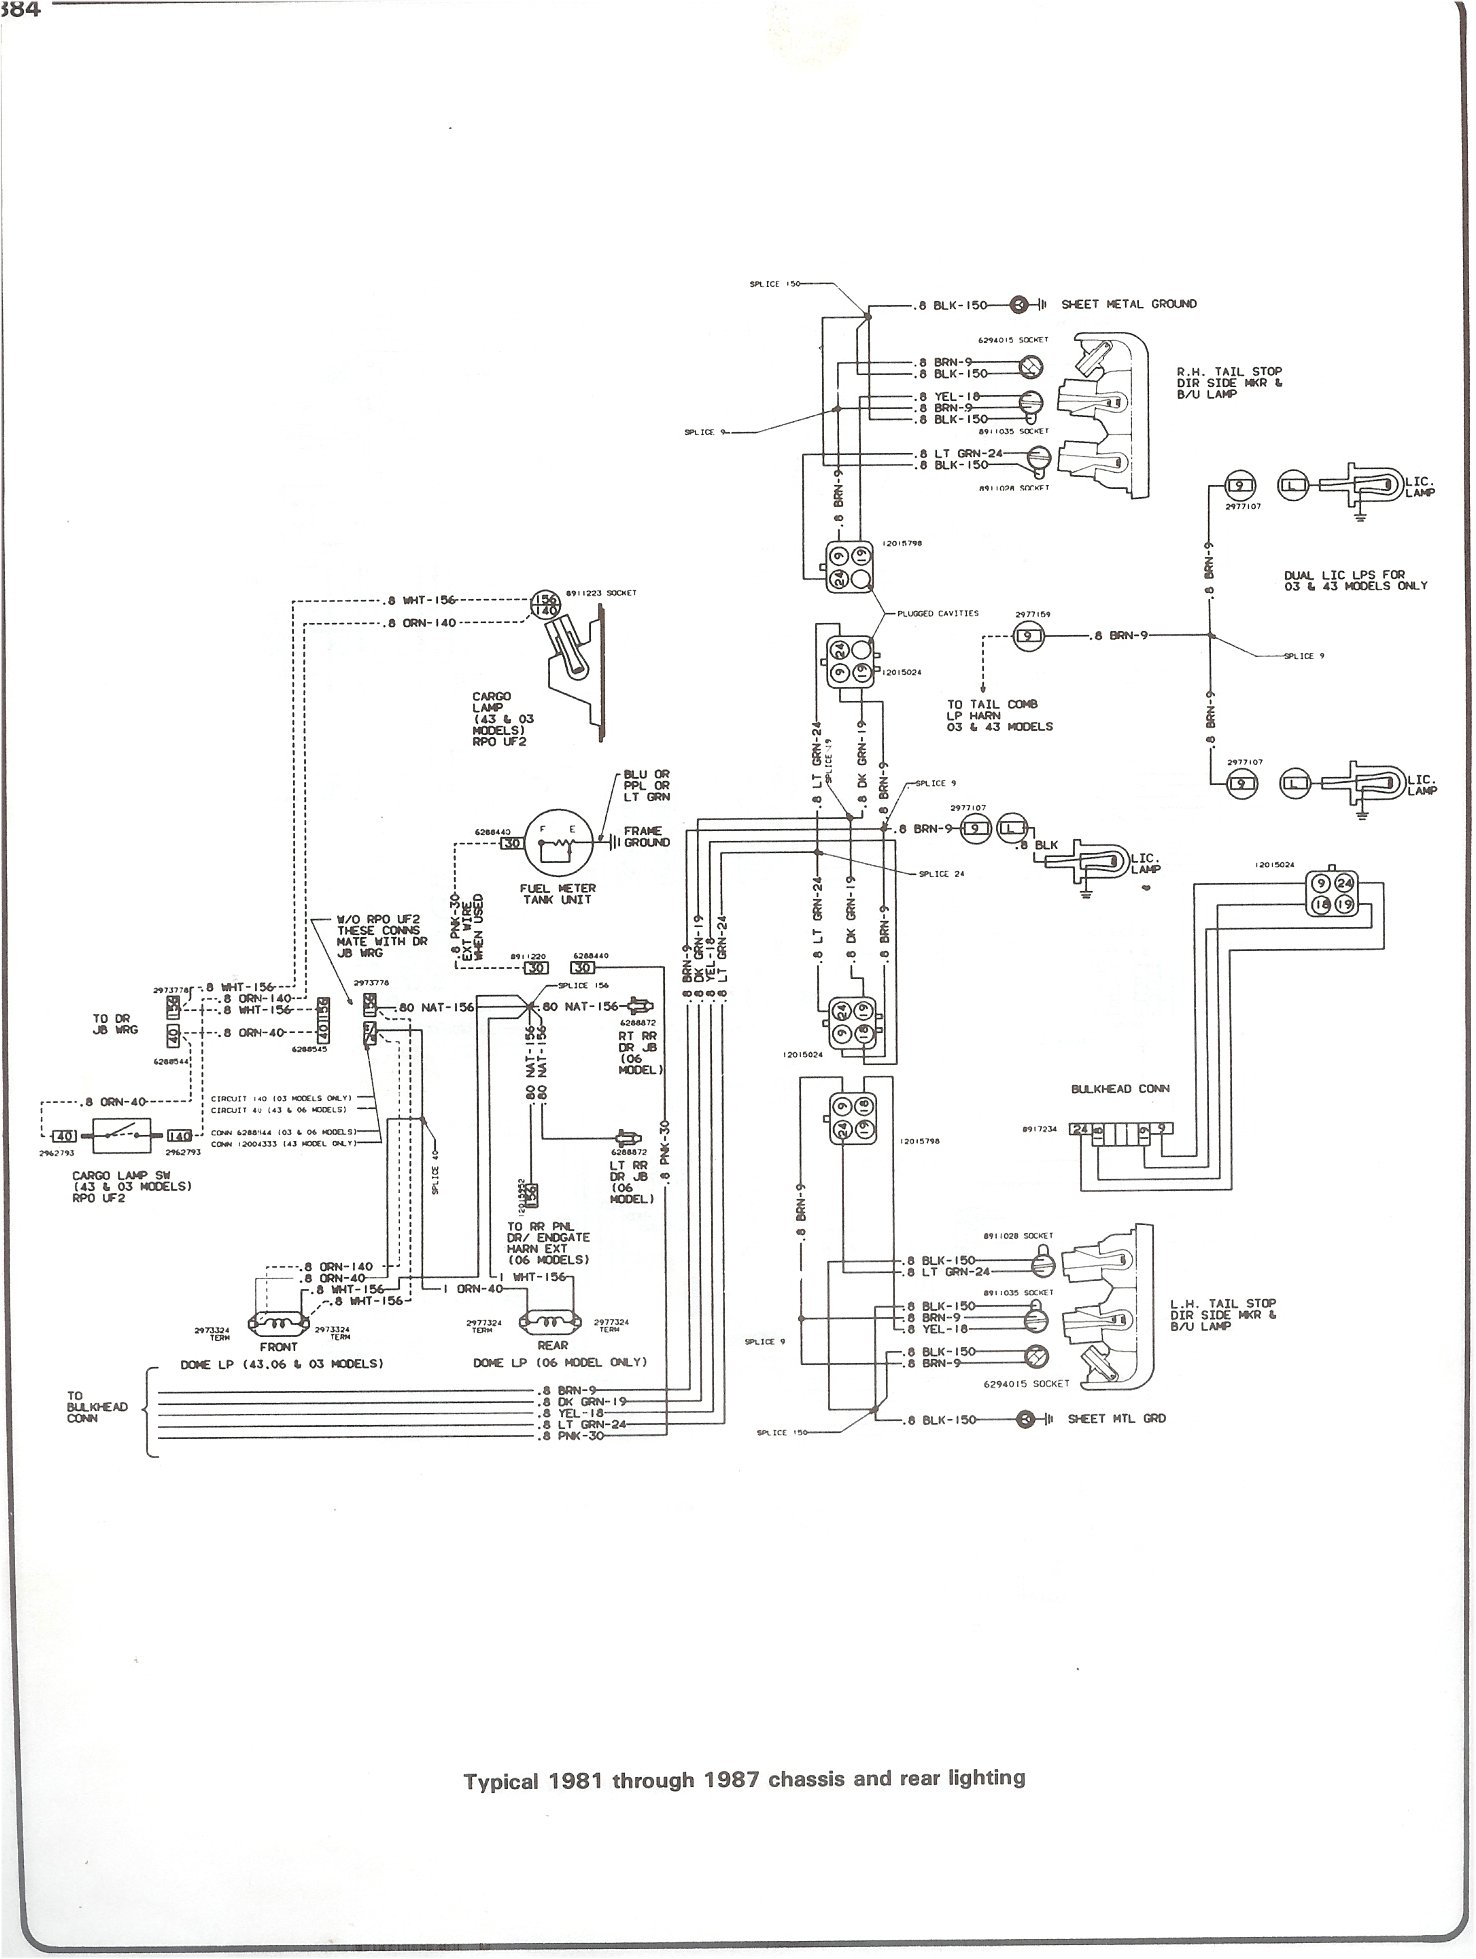 81 87_chass_rr_light complete 73 87 wiring diagrams 1996 chevy truck wiring diagram at edmiracle.co